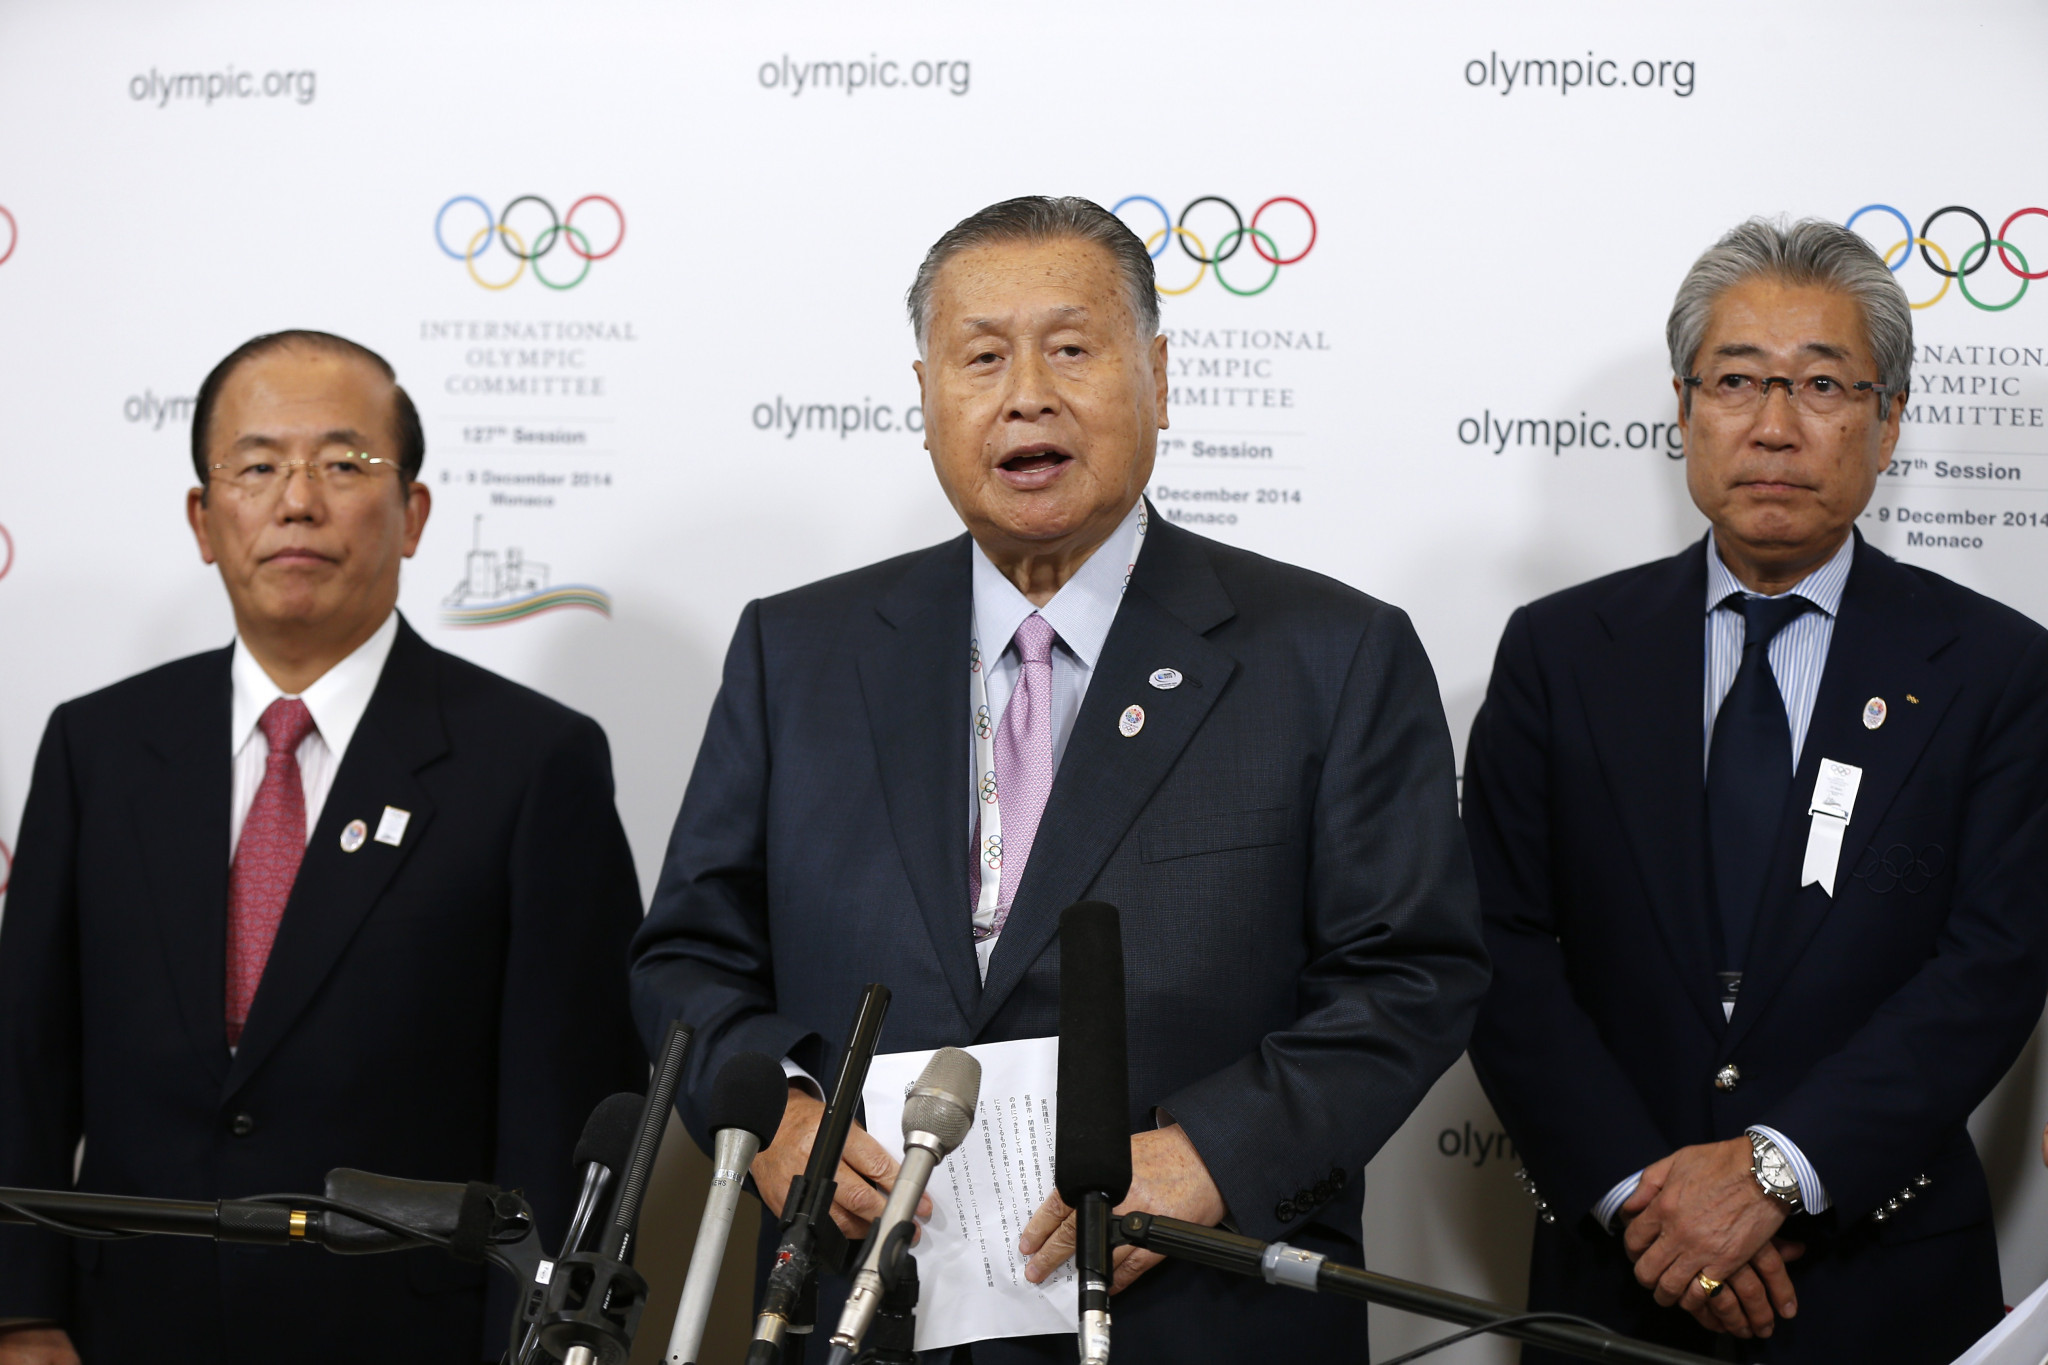 Tokyo 2020 chief executive Toshirō Mutō, left, has backed Tsunekazu Takeda, right, to remain as Japanese Olympic Committee President, despite being at the centre of a corruption scandal linked to the city's successful bid ©Getty Images